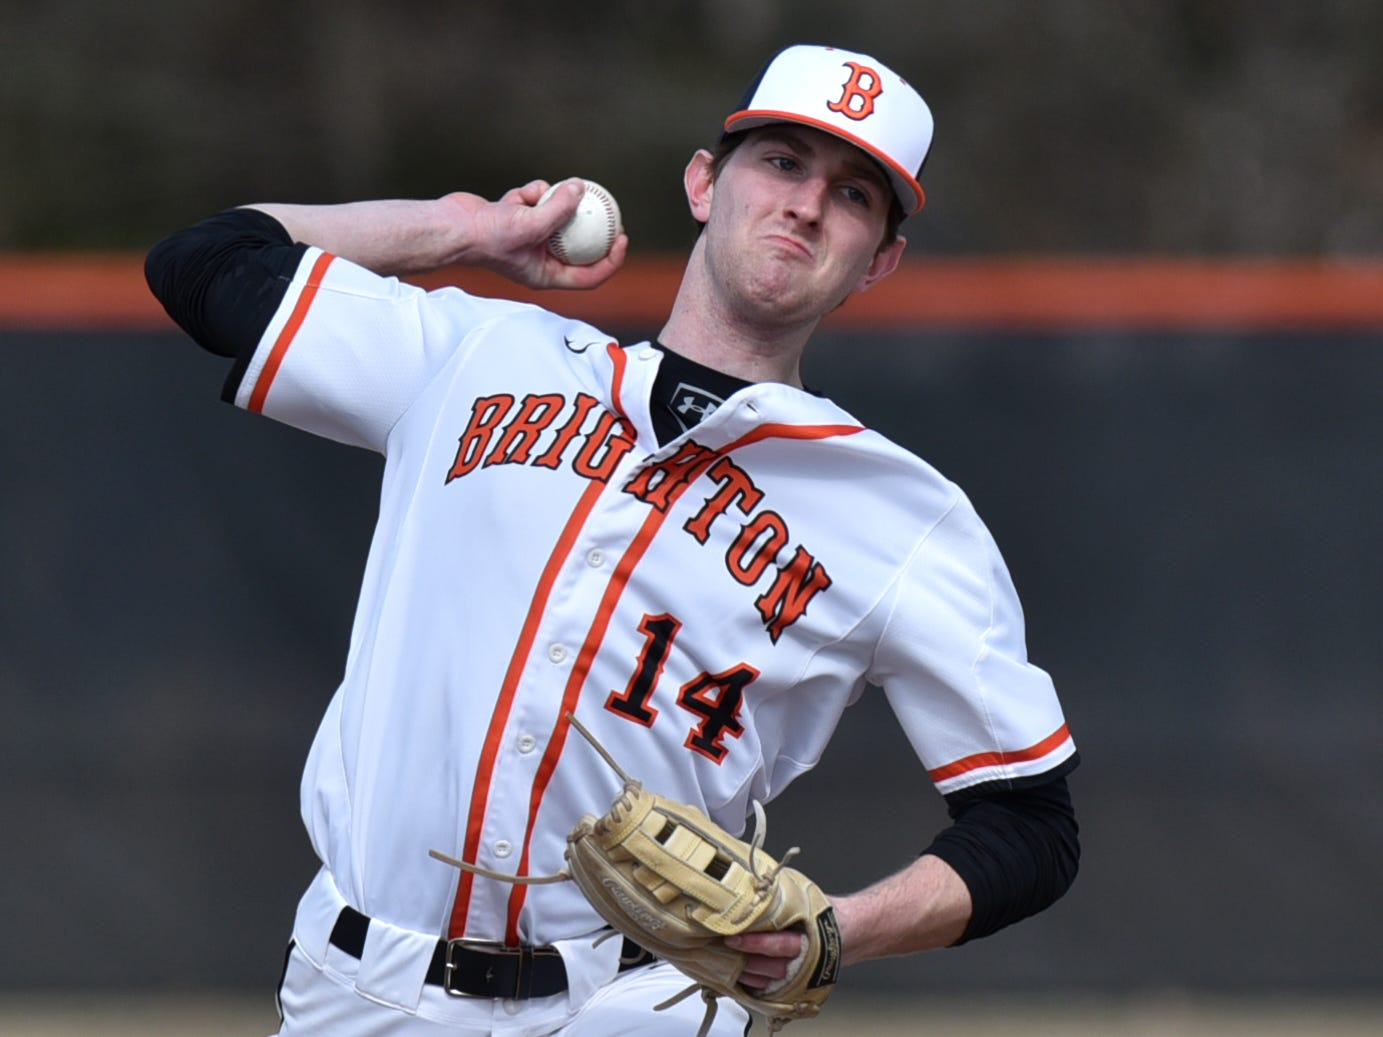 Brighton's Camden Benedict pitches against Canton on Tuesday, April 2, 2019.